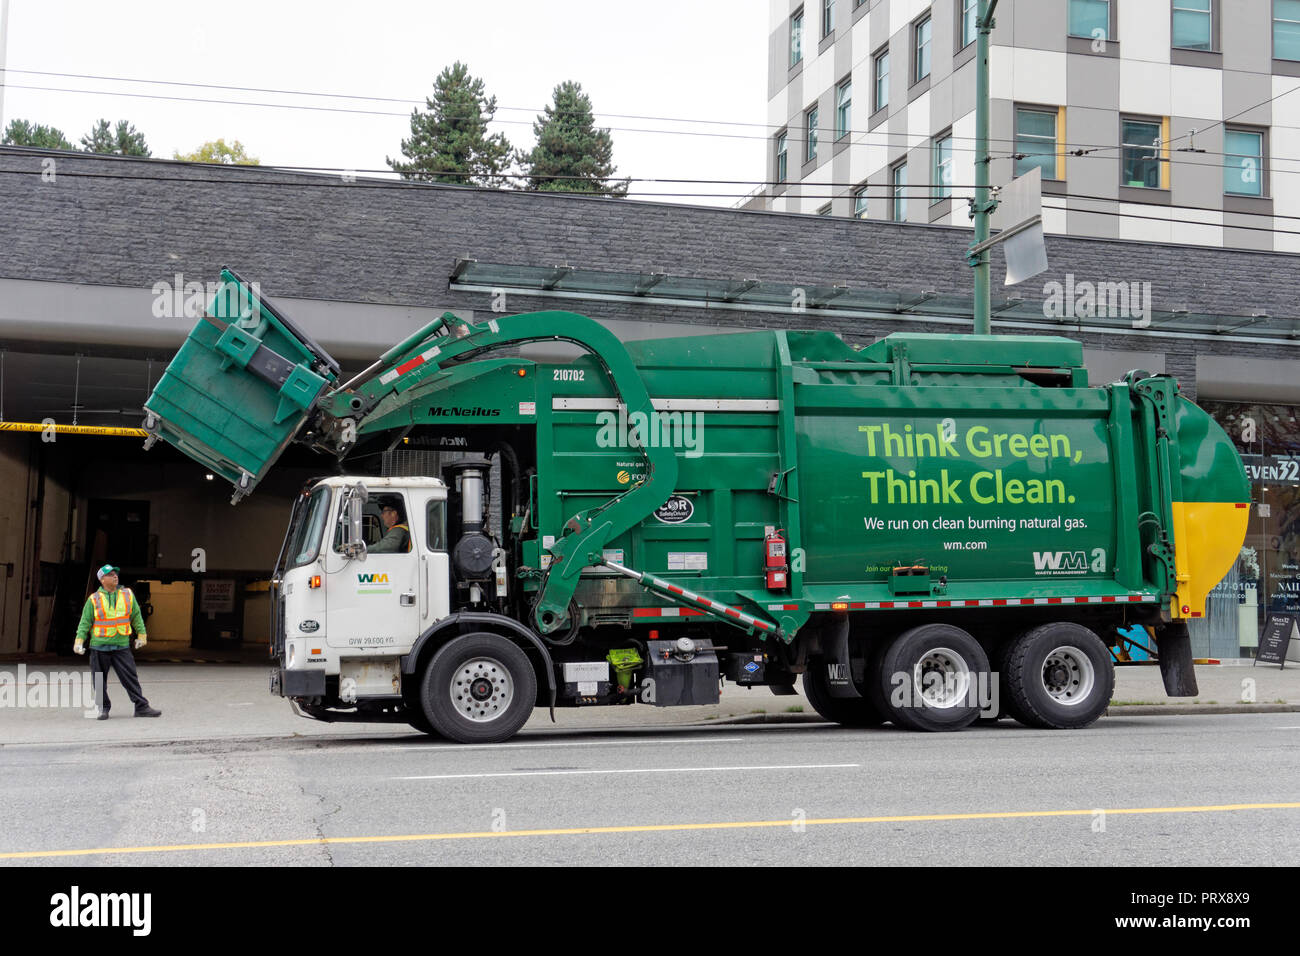 hight resolution of green clean energy waste management garbage truck lifting a dumpster vancouver bc canada